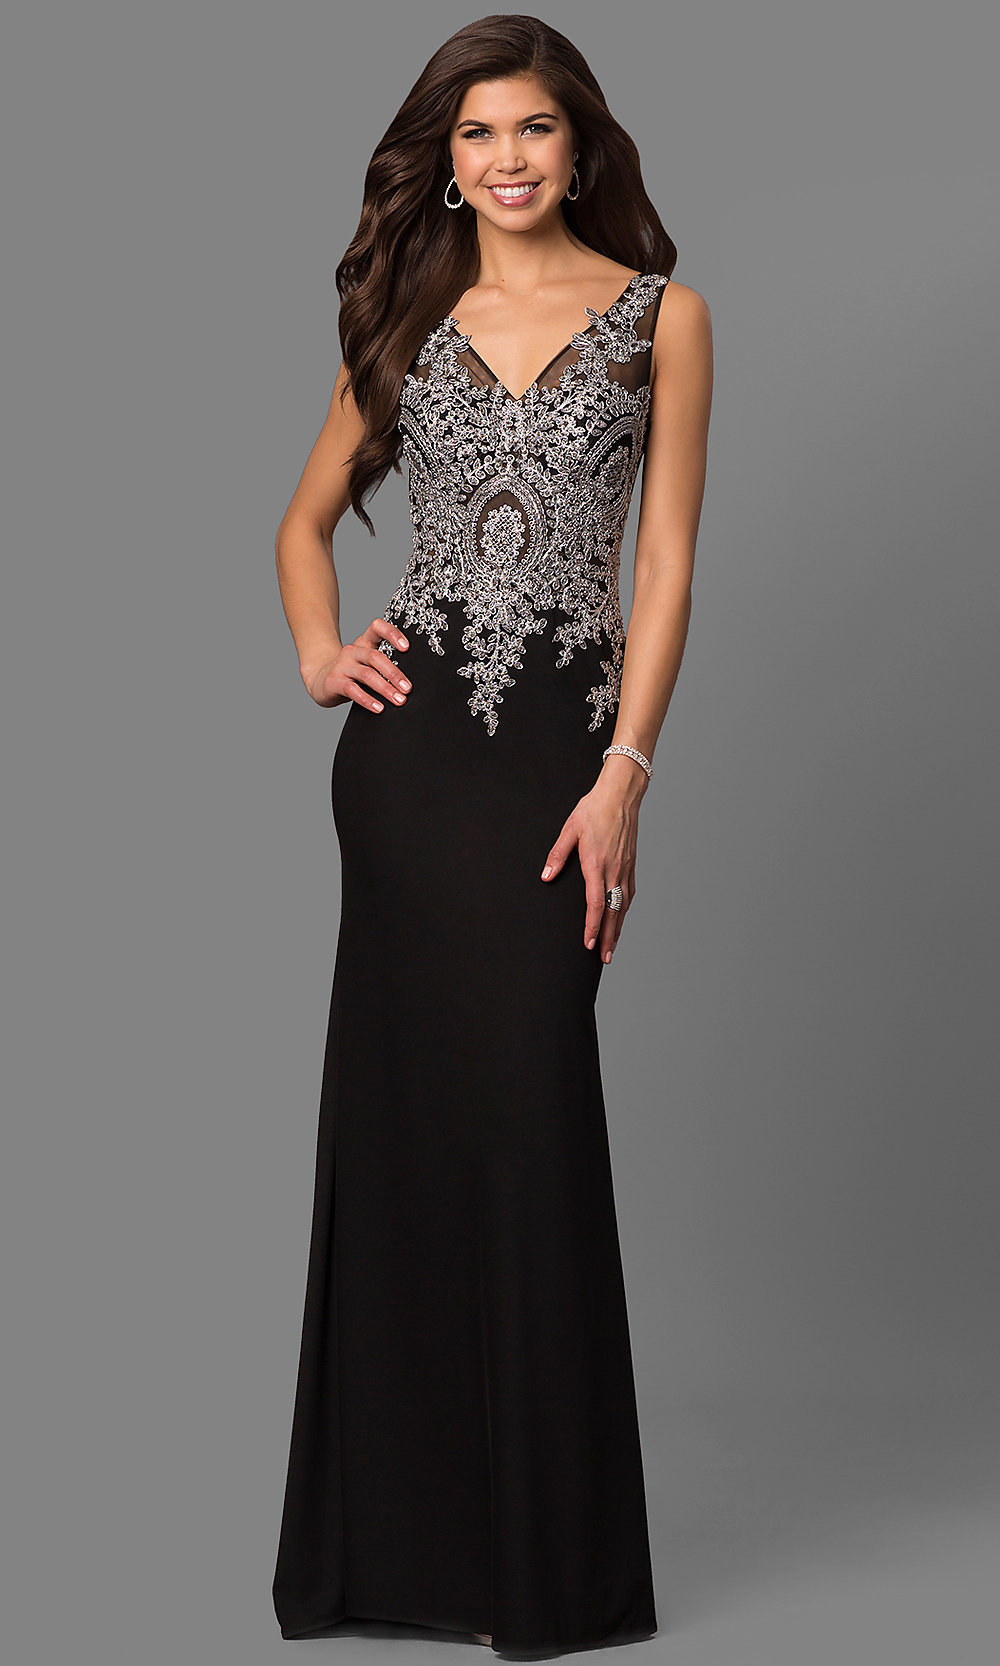 3ddb34b9 Black Evening Dress with Lace Bodice - PromGirl